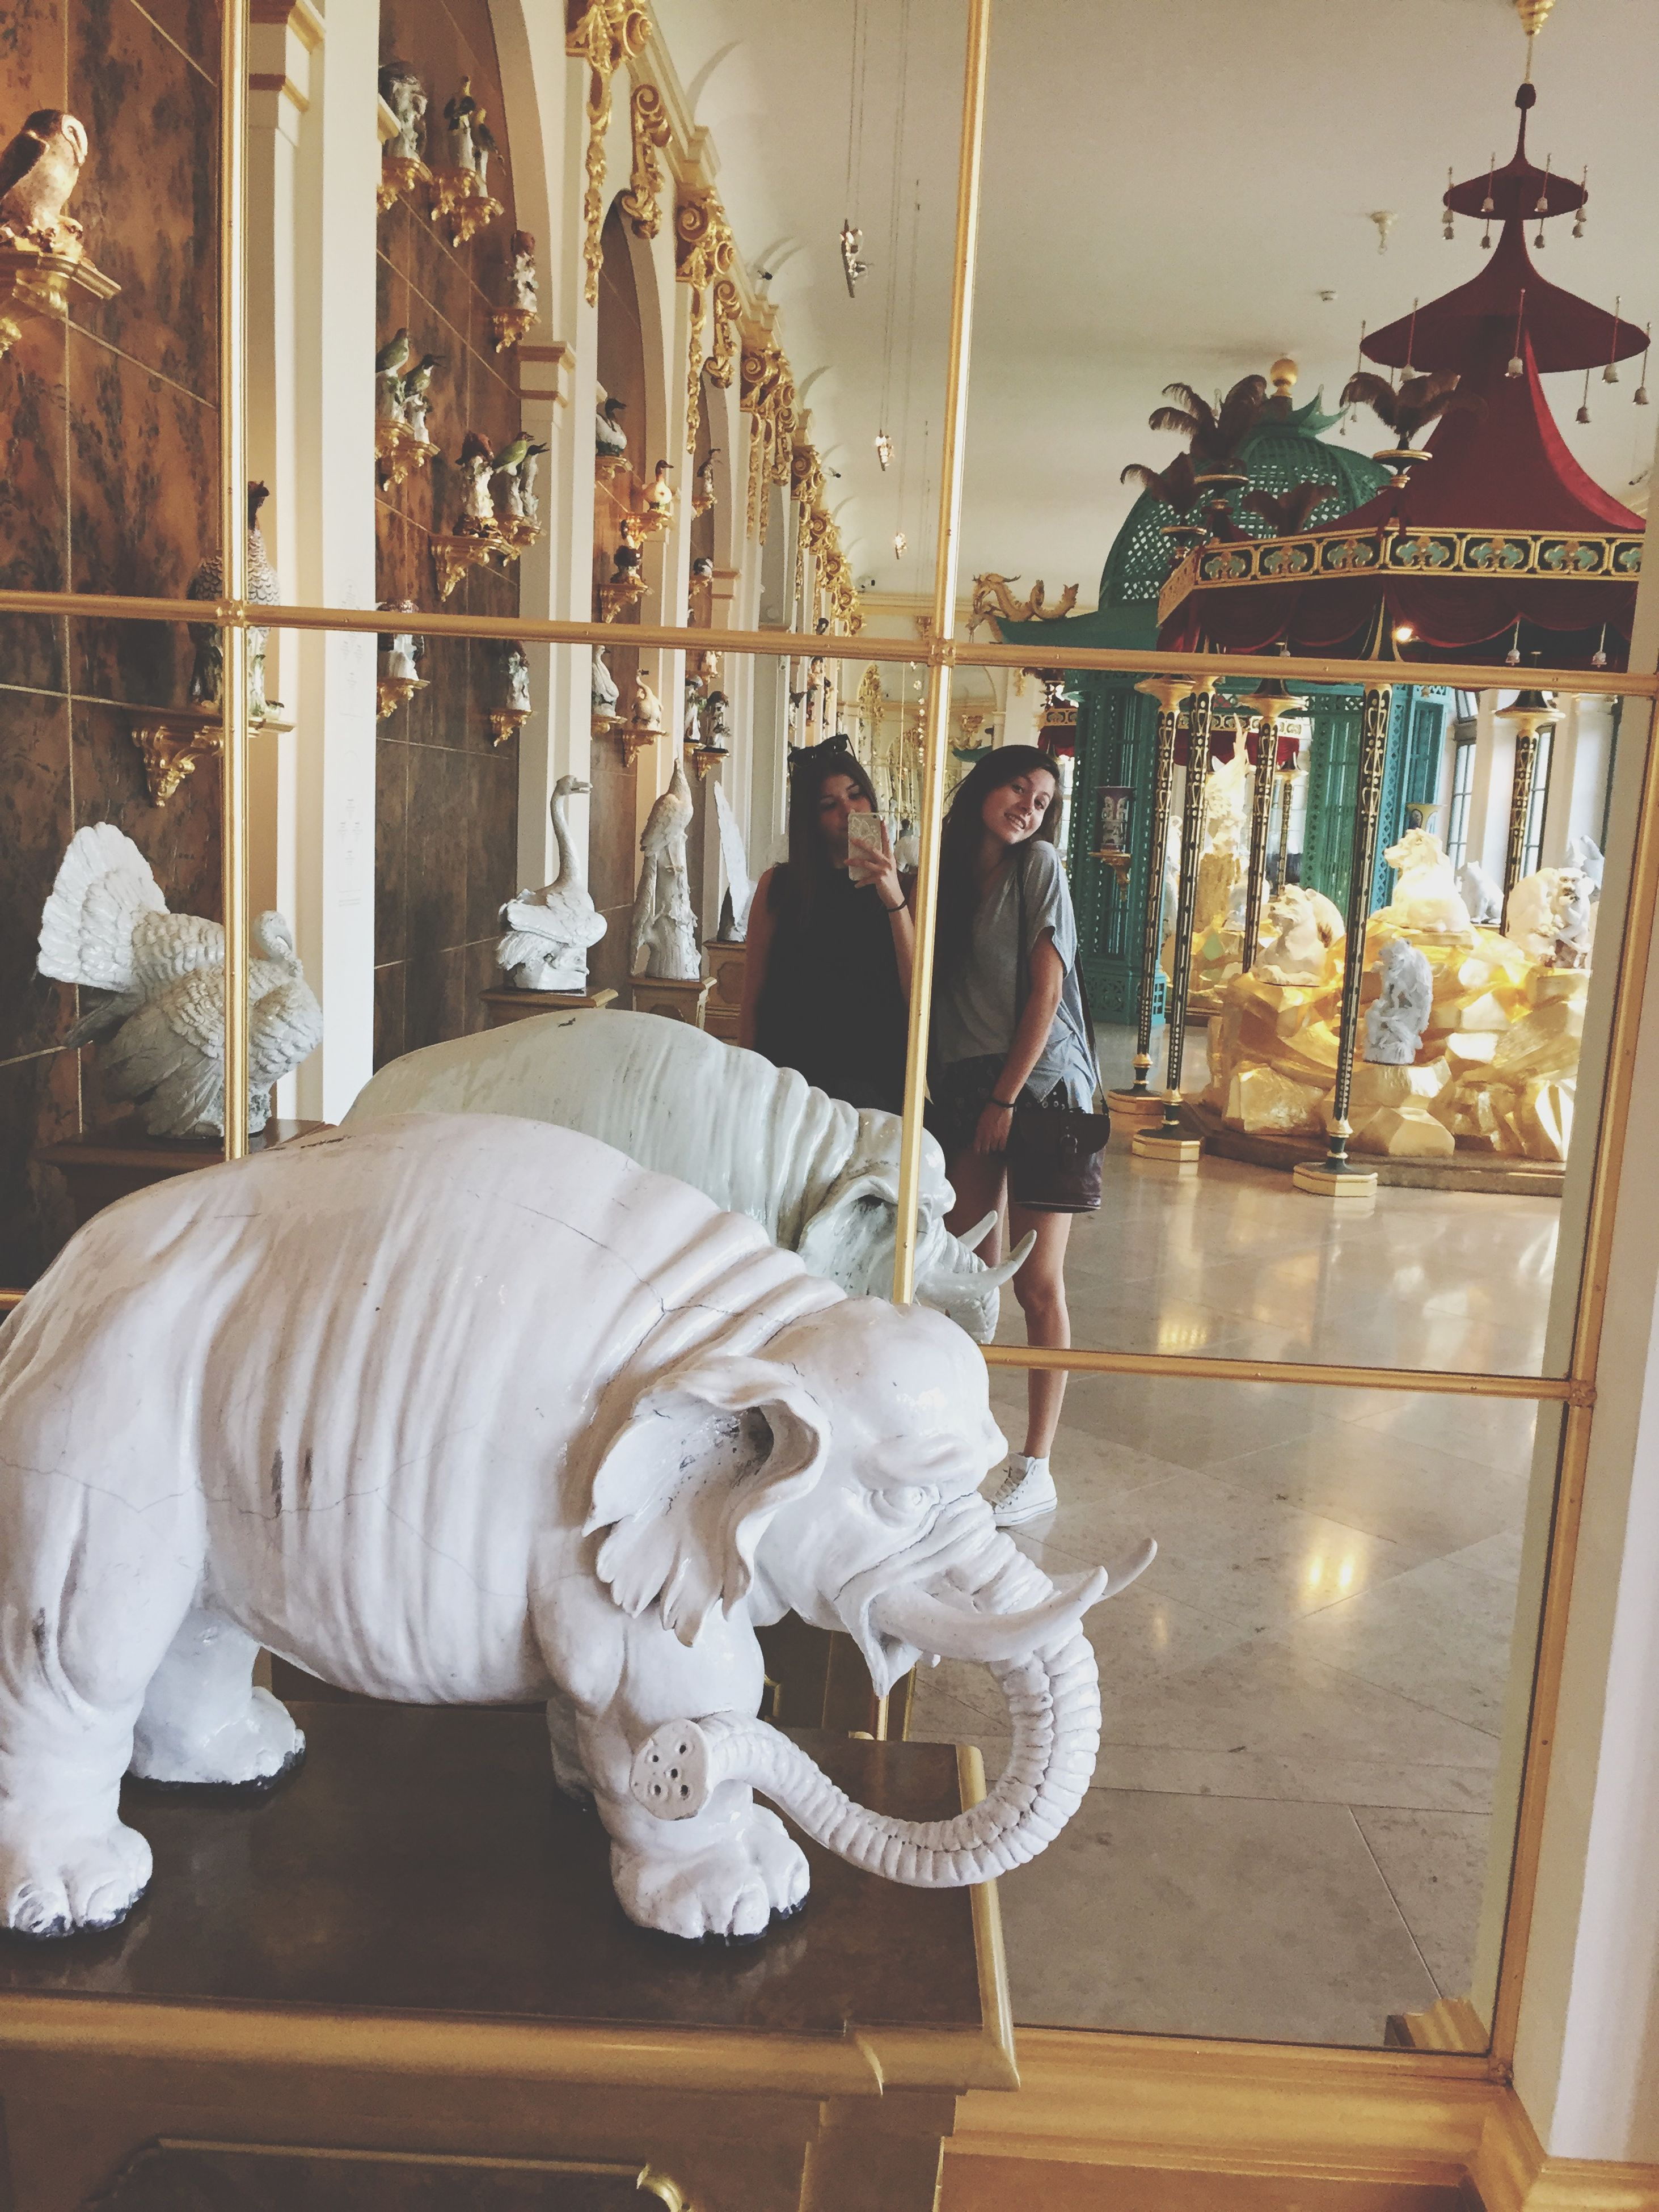 indoors, animal representation, art and craft, art, hanging, human representation, creativity, sculpture, retail, statue, animal themes, bird, decoration, architecture, built structure, glass - material, arts culture and entertainment, no people